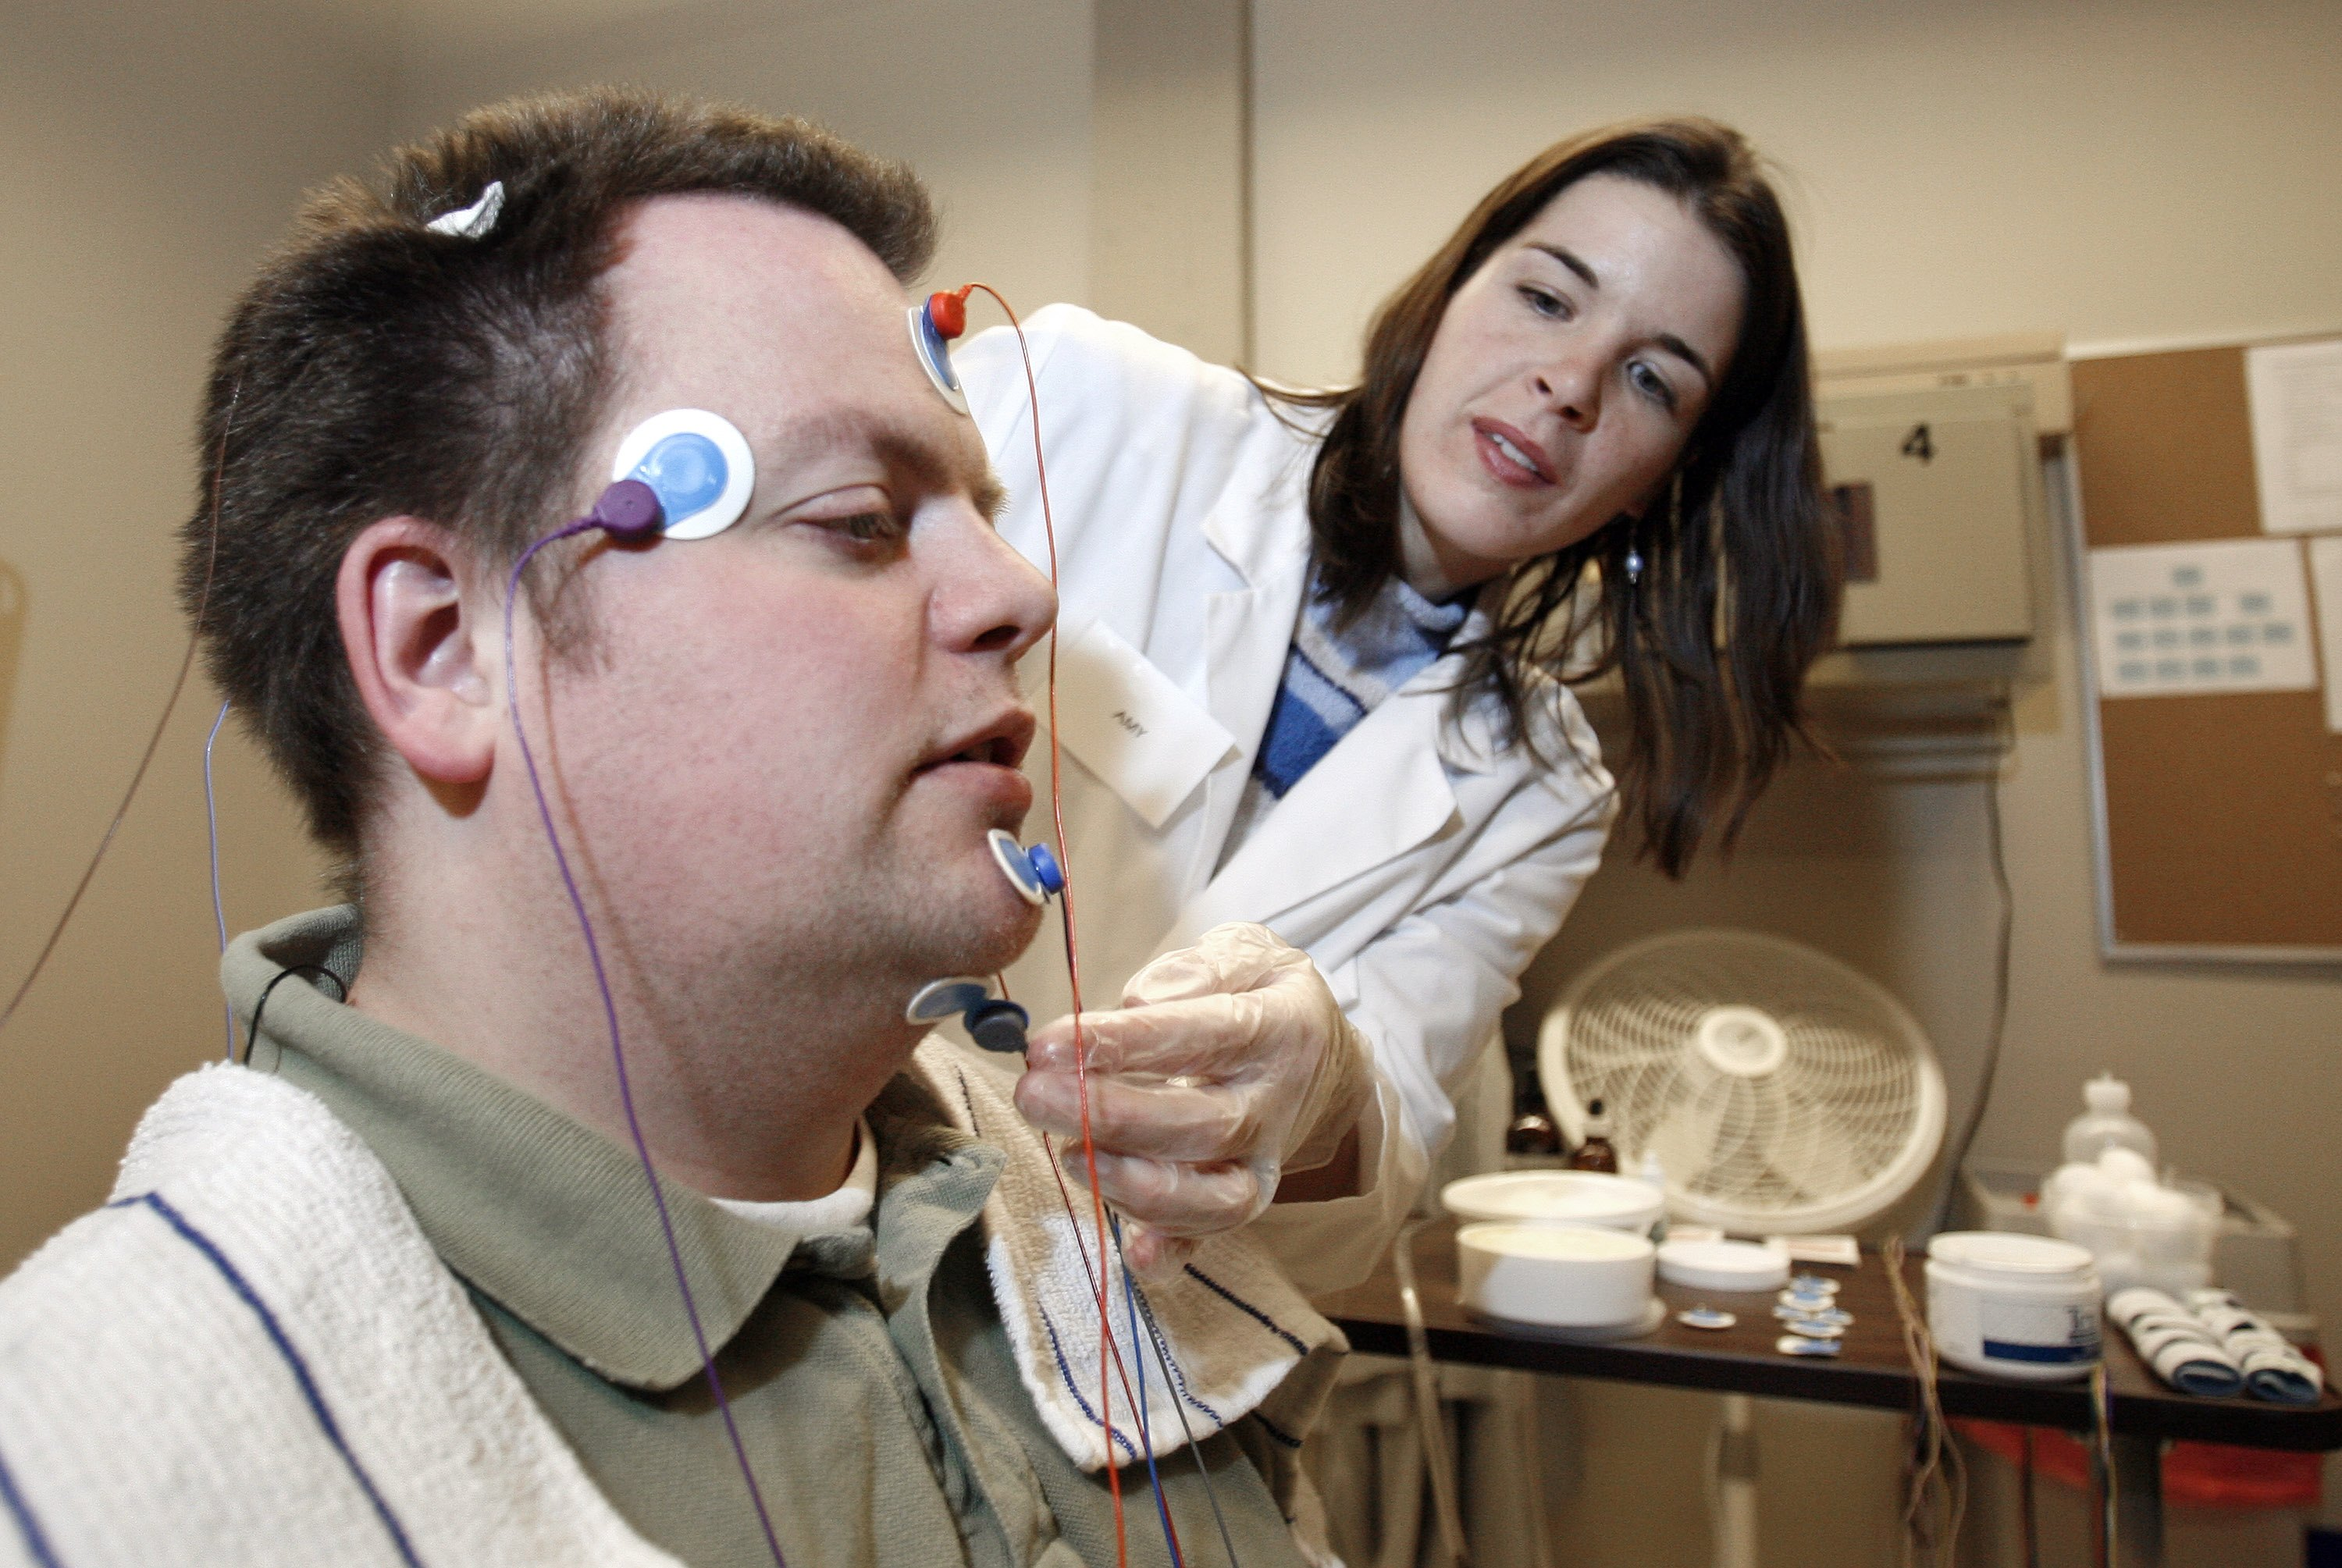 Ryan Gamble has wires applied to his head by lab technologist Amy Bender in preparation for a polysomnographic recording system demonstration at Washington State University Spokane's Sleep and Performance Research Center December 13, 2006 in Spokane, Washington.